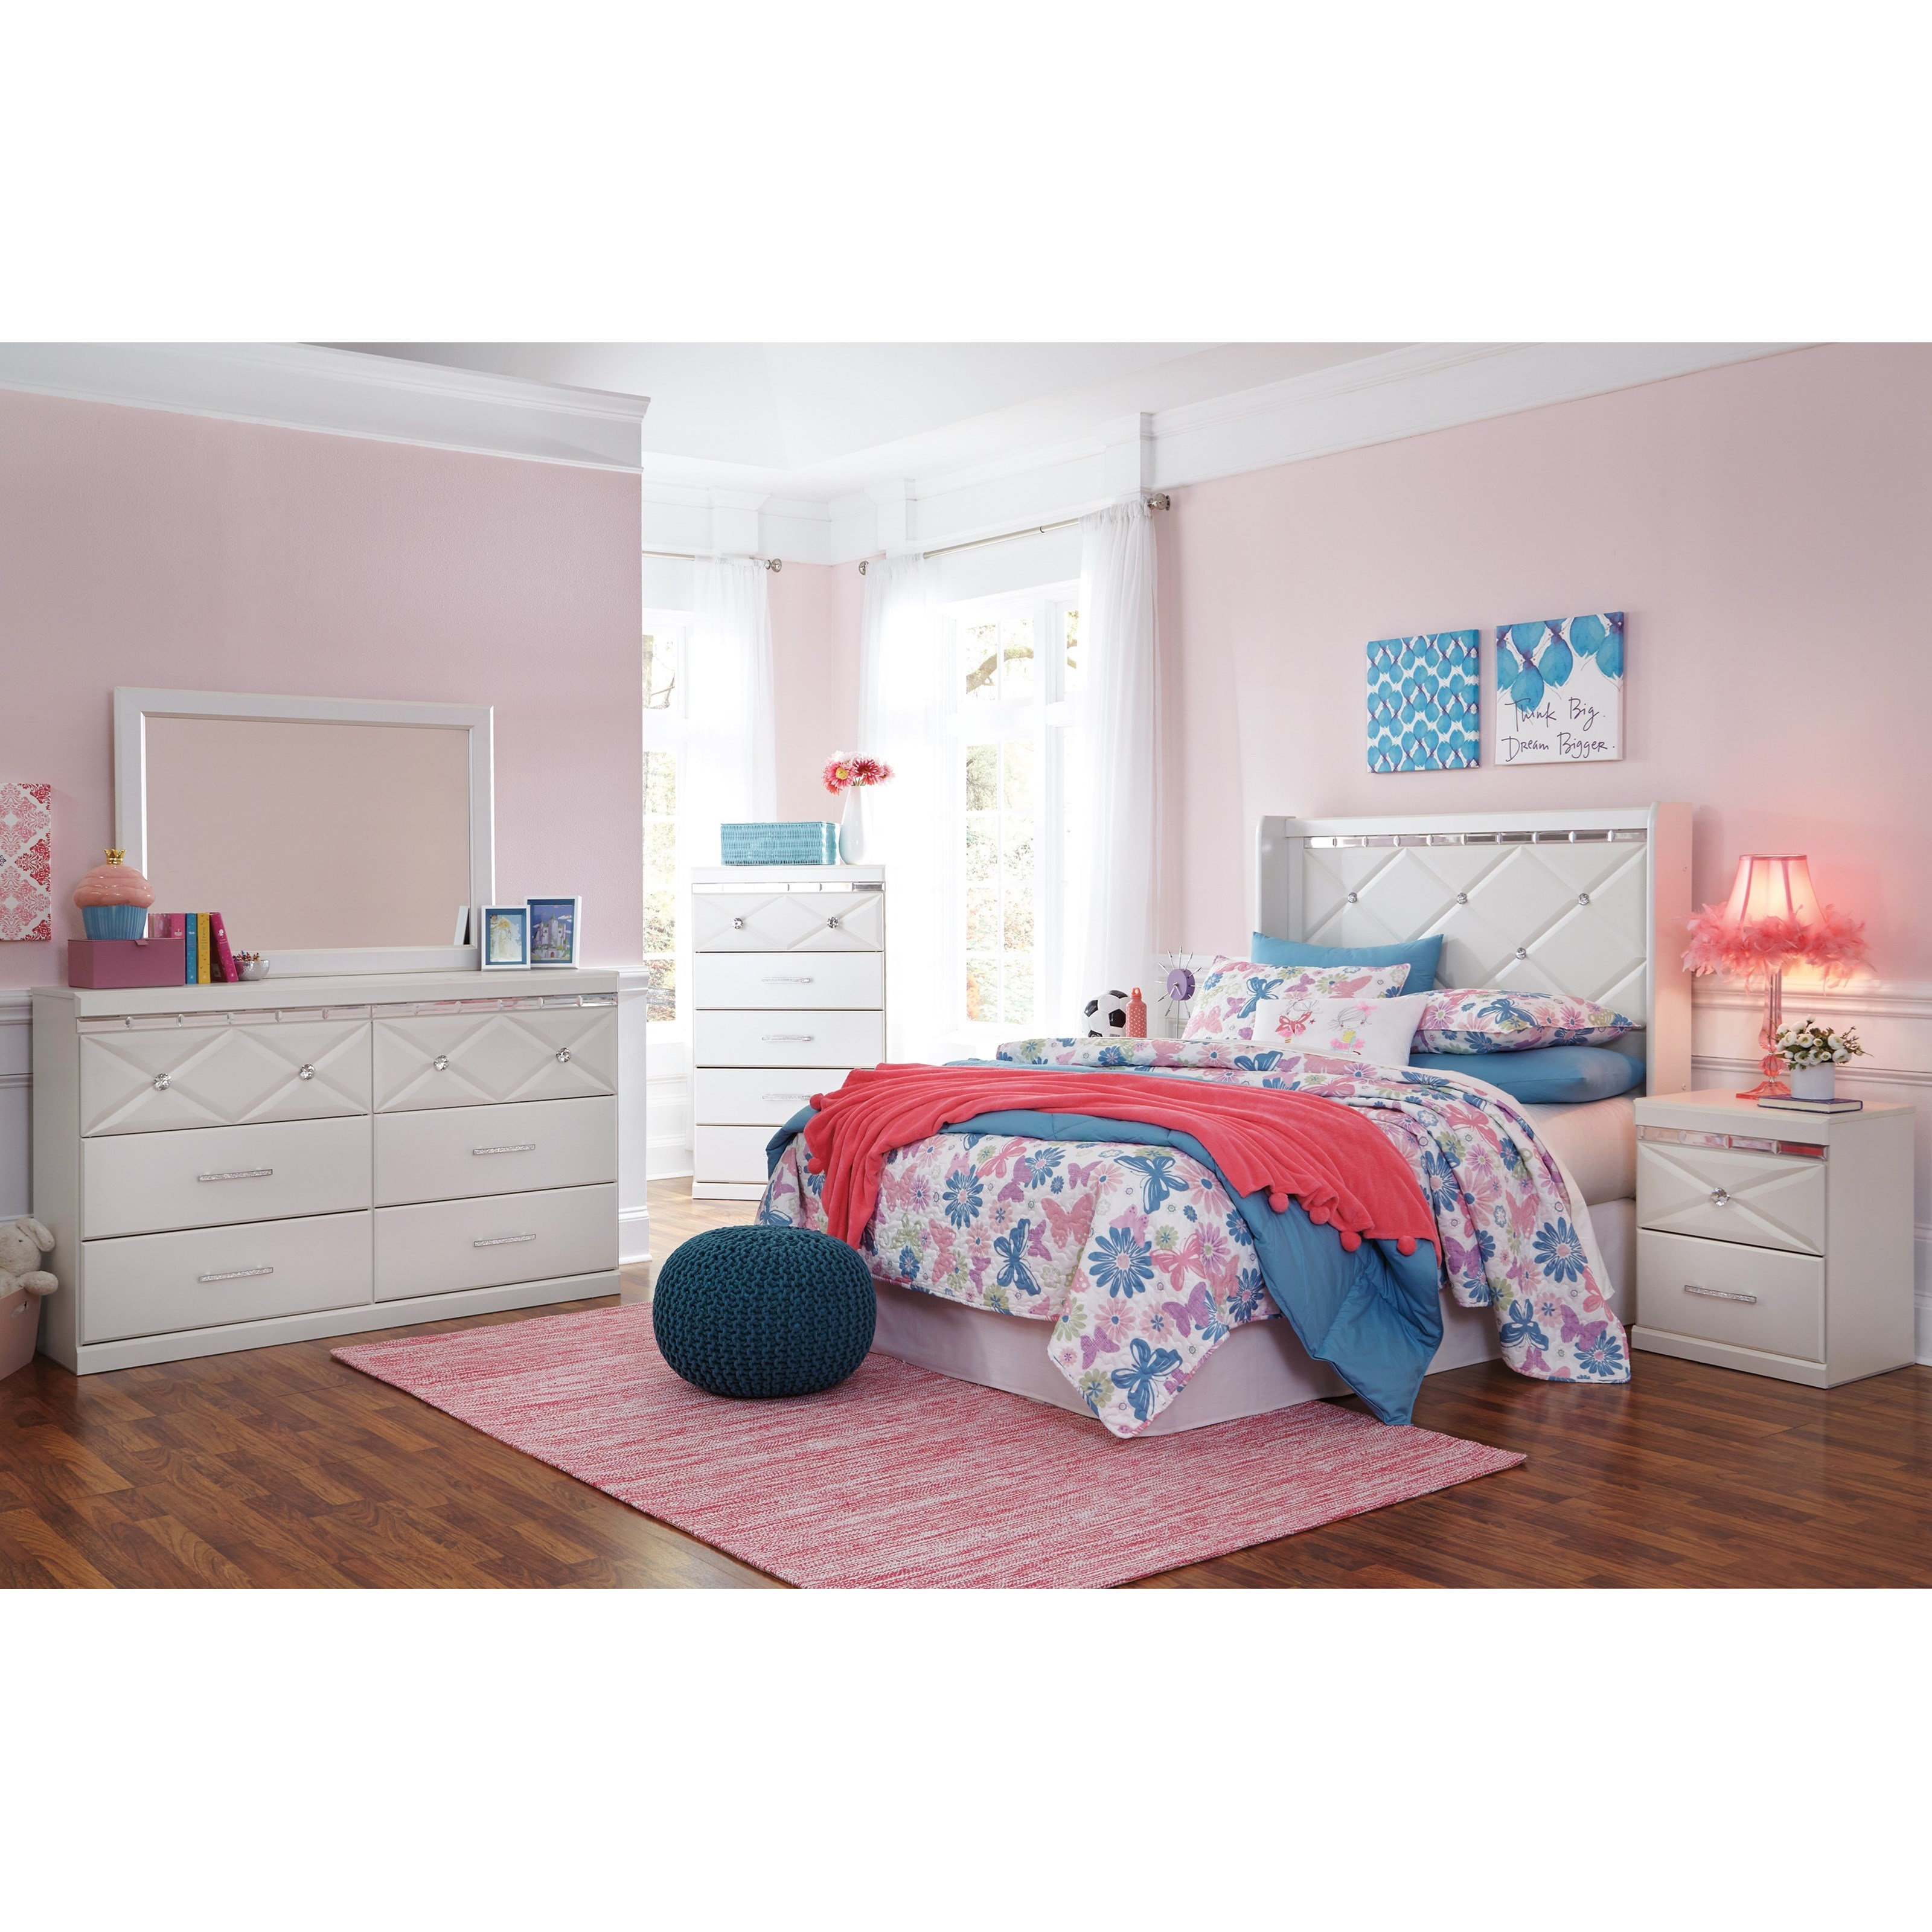 Dreamur Full Bedroom Group by Signature Design by Ashley at Standard Furniture